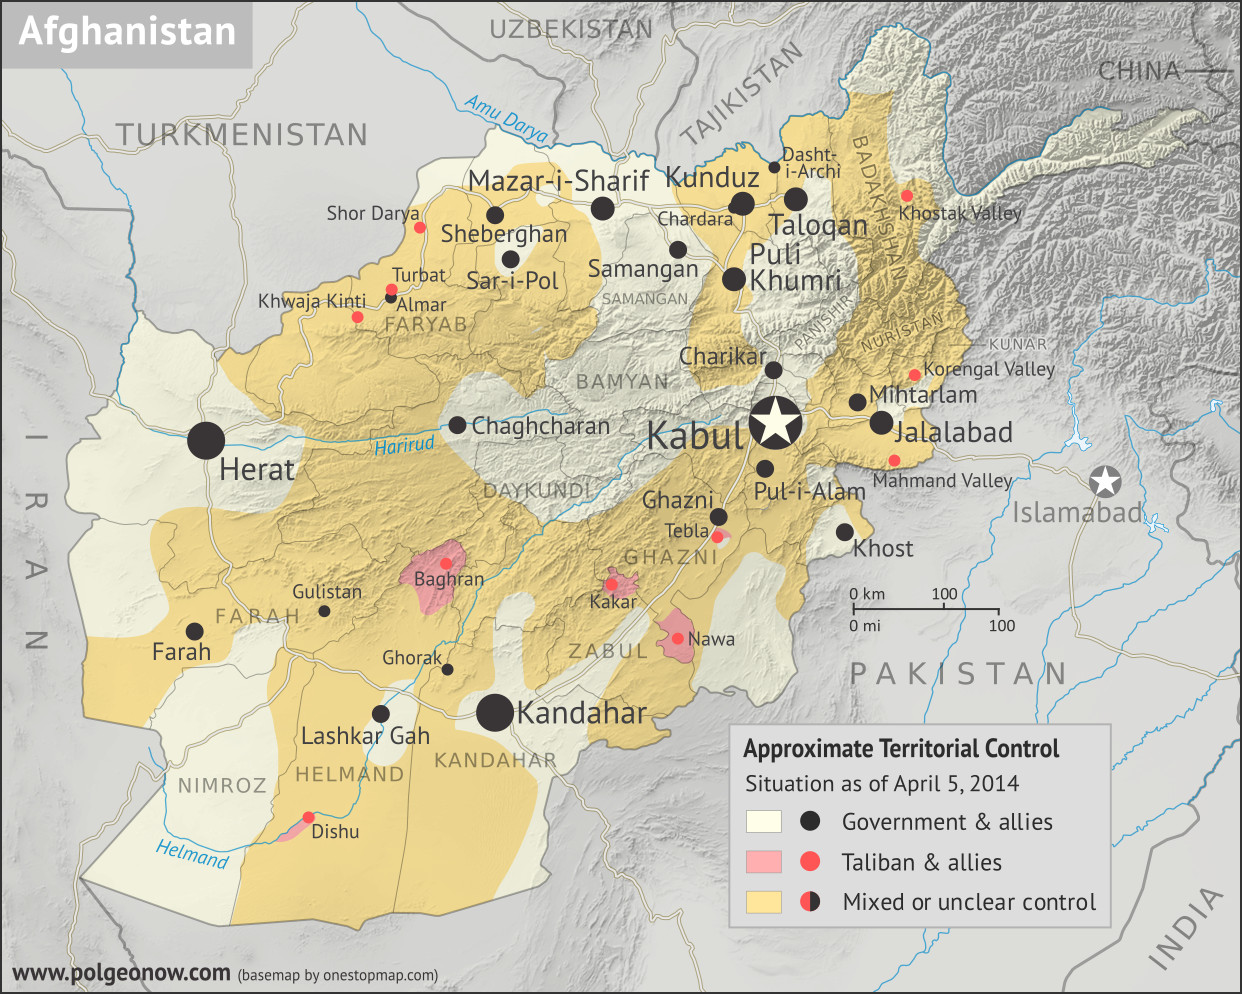 Korengal Valley Map Afghnanistan: Map of Taliban Control in April 2014   Political